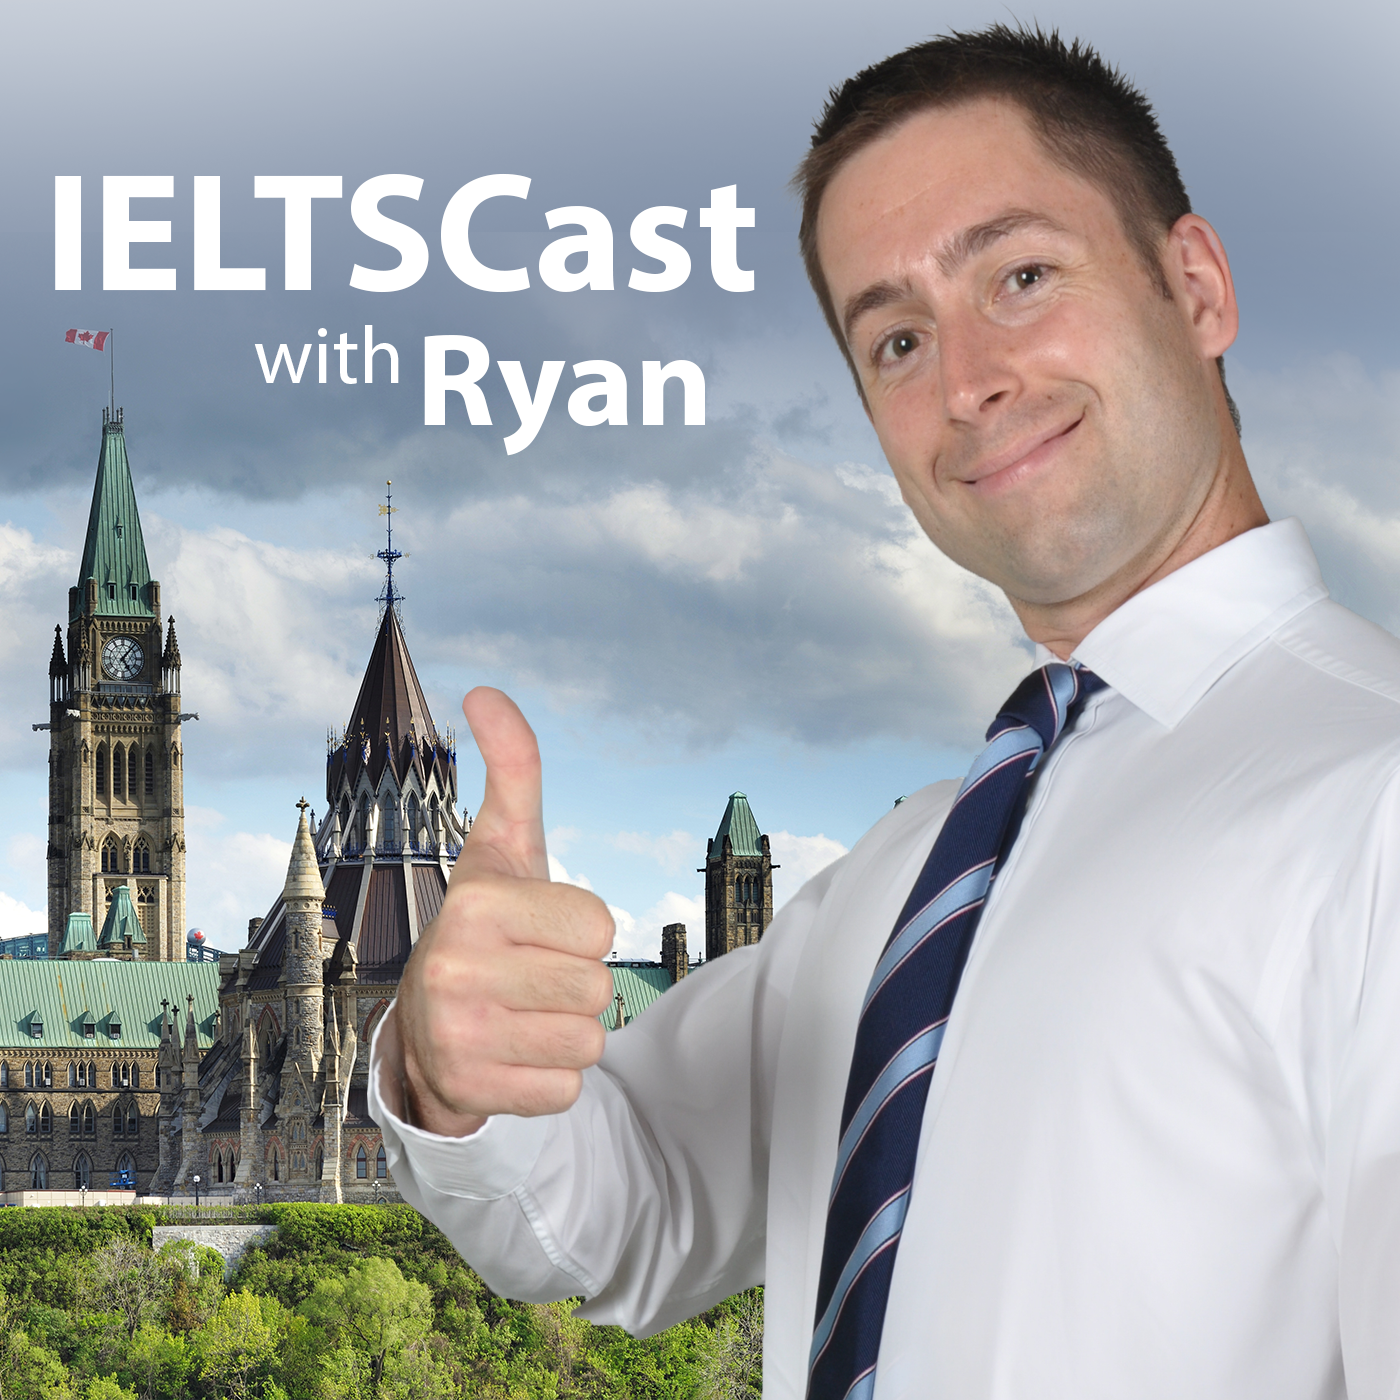 Episode 43 - Noah has IELTS success in Australia after two disappointing experiences in Vietnam